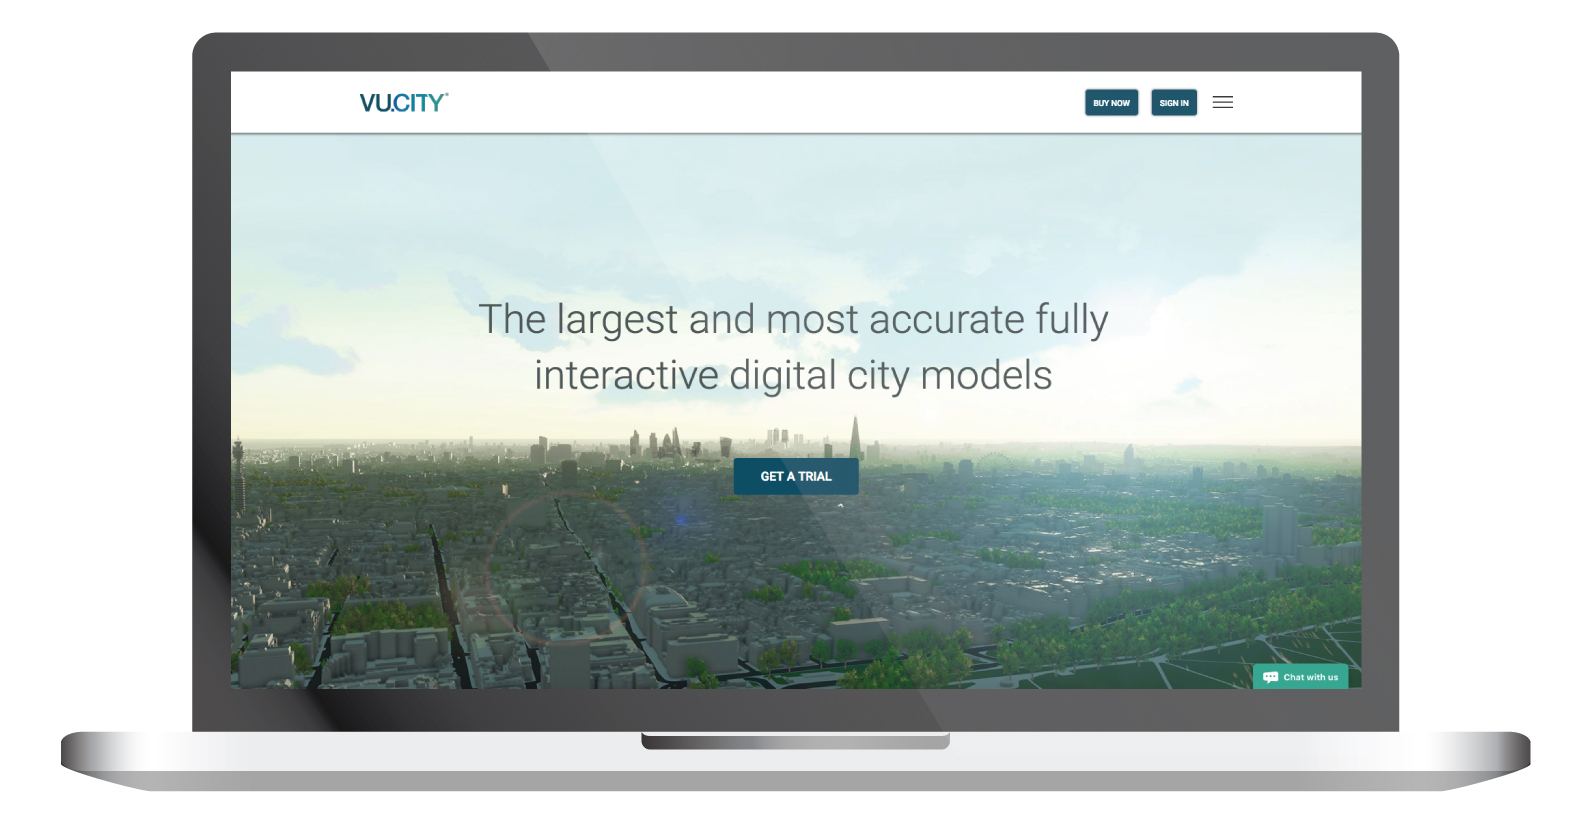 vucity homepage laptop